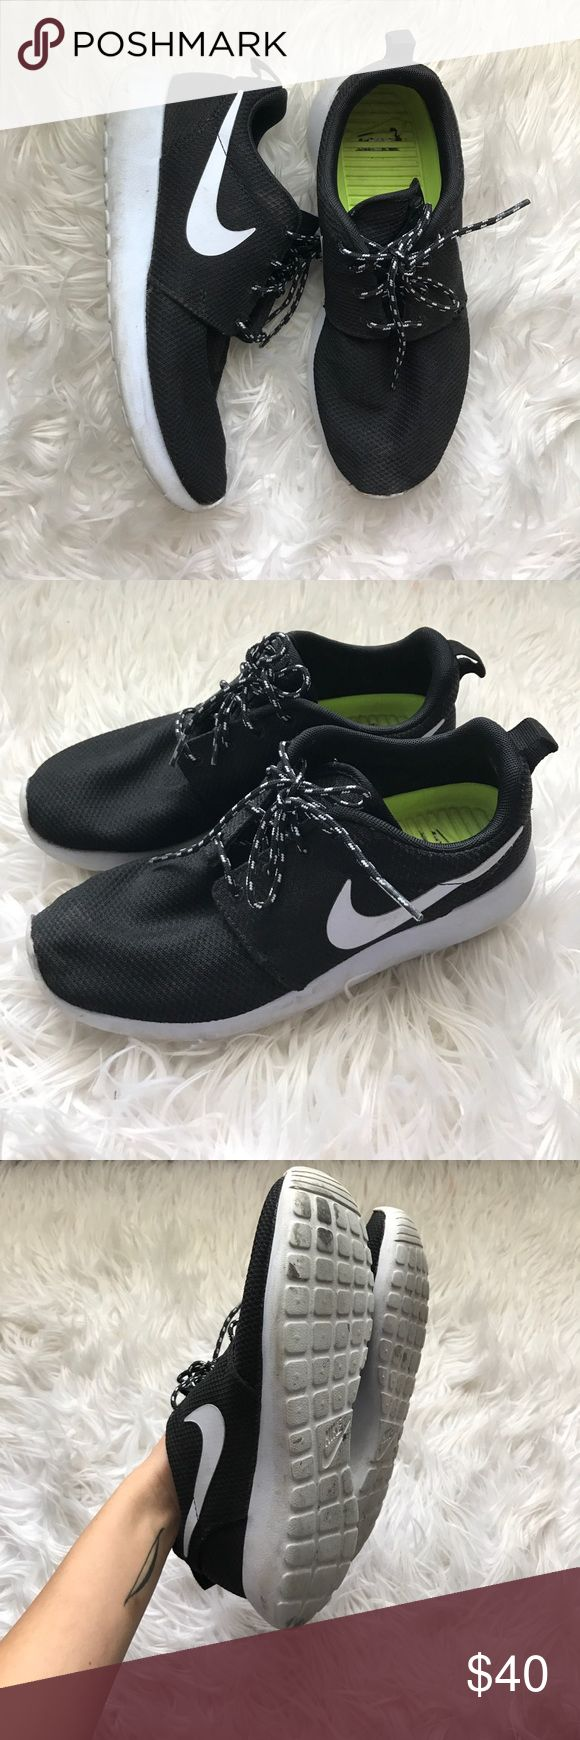 Classic Nike Roshe runs The classic black and white roshe runs. Wore quite a bit so it's a bit dirty on the soles but a good scrub will make it look nice and clean! Nike Shoes Athletic Shoes